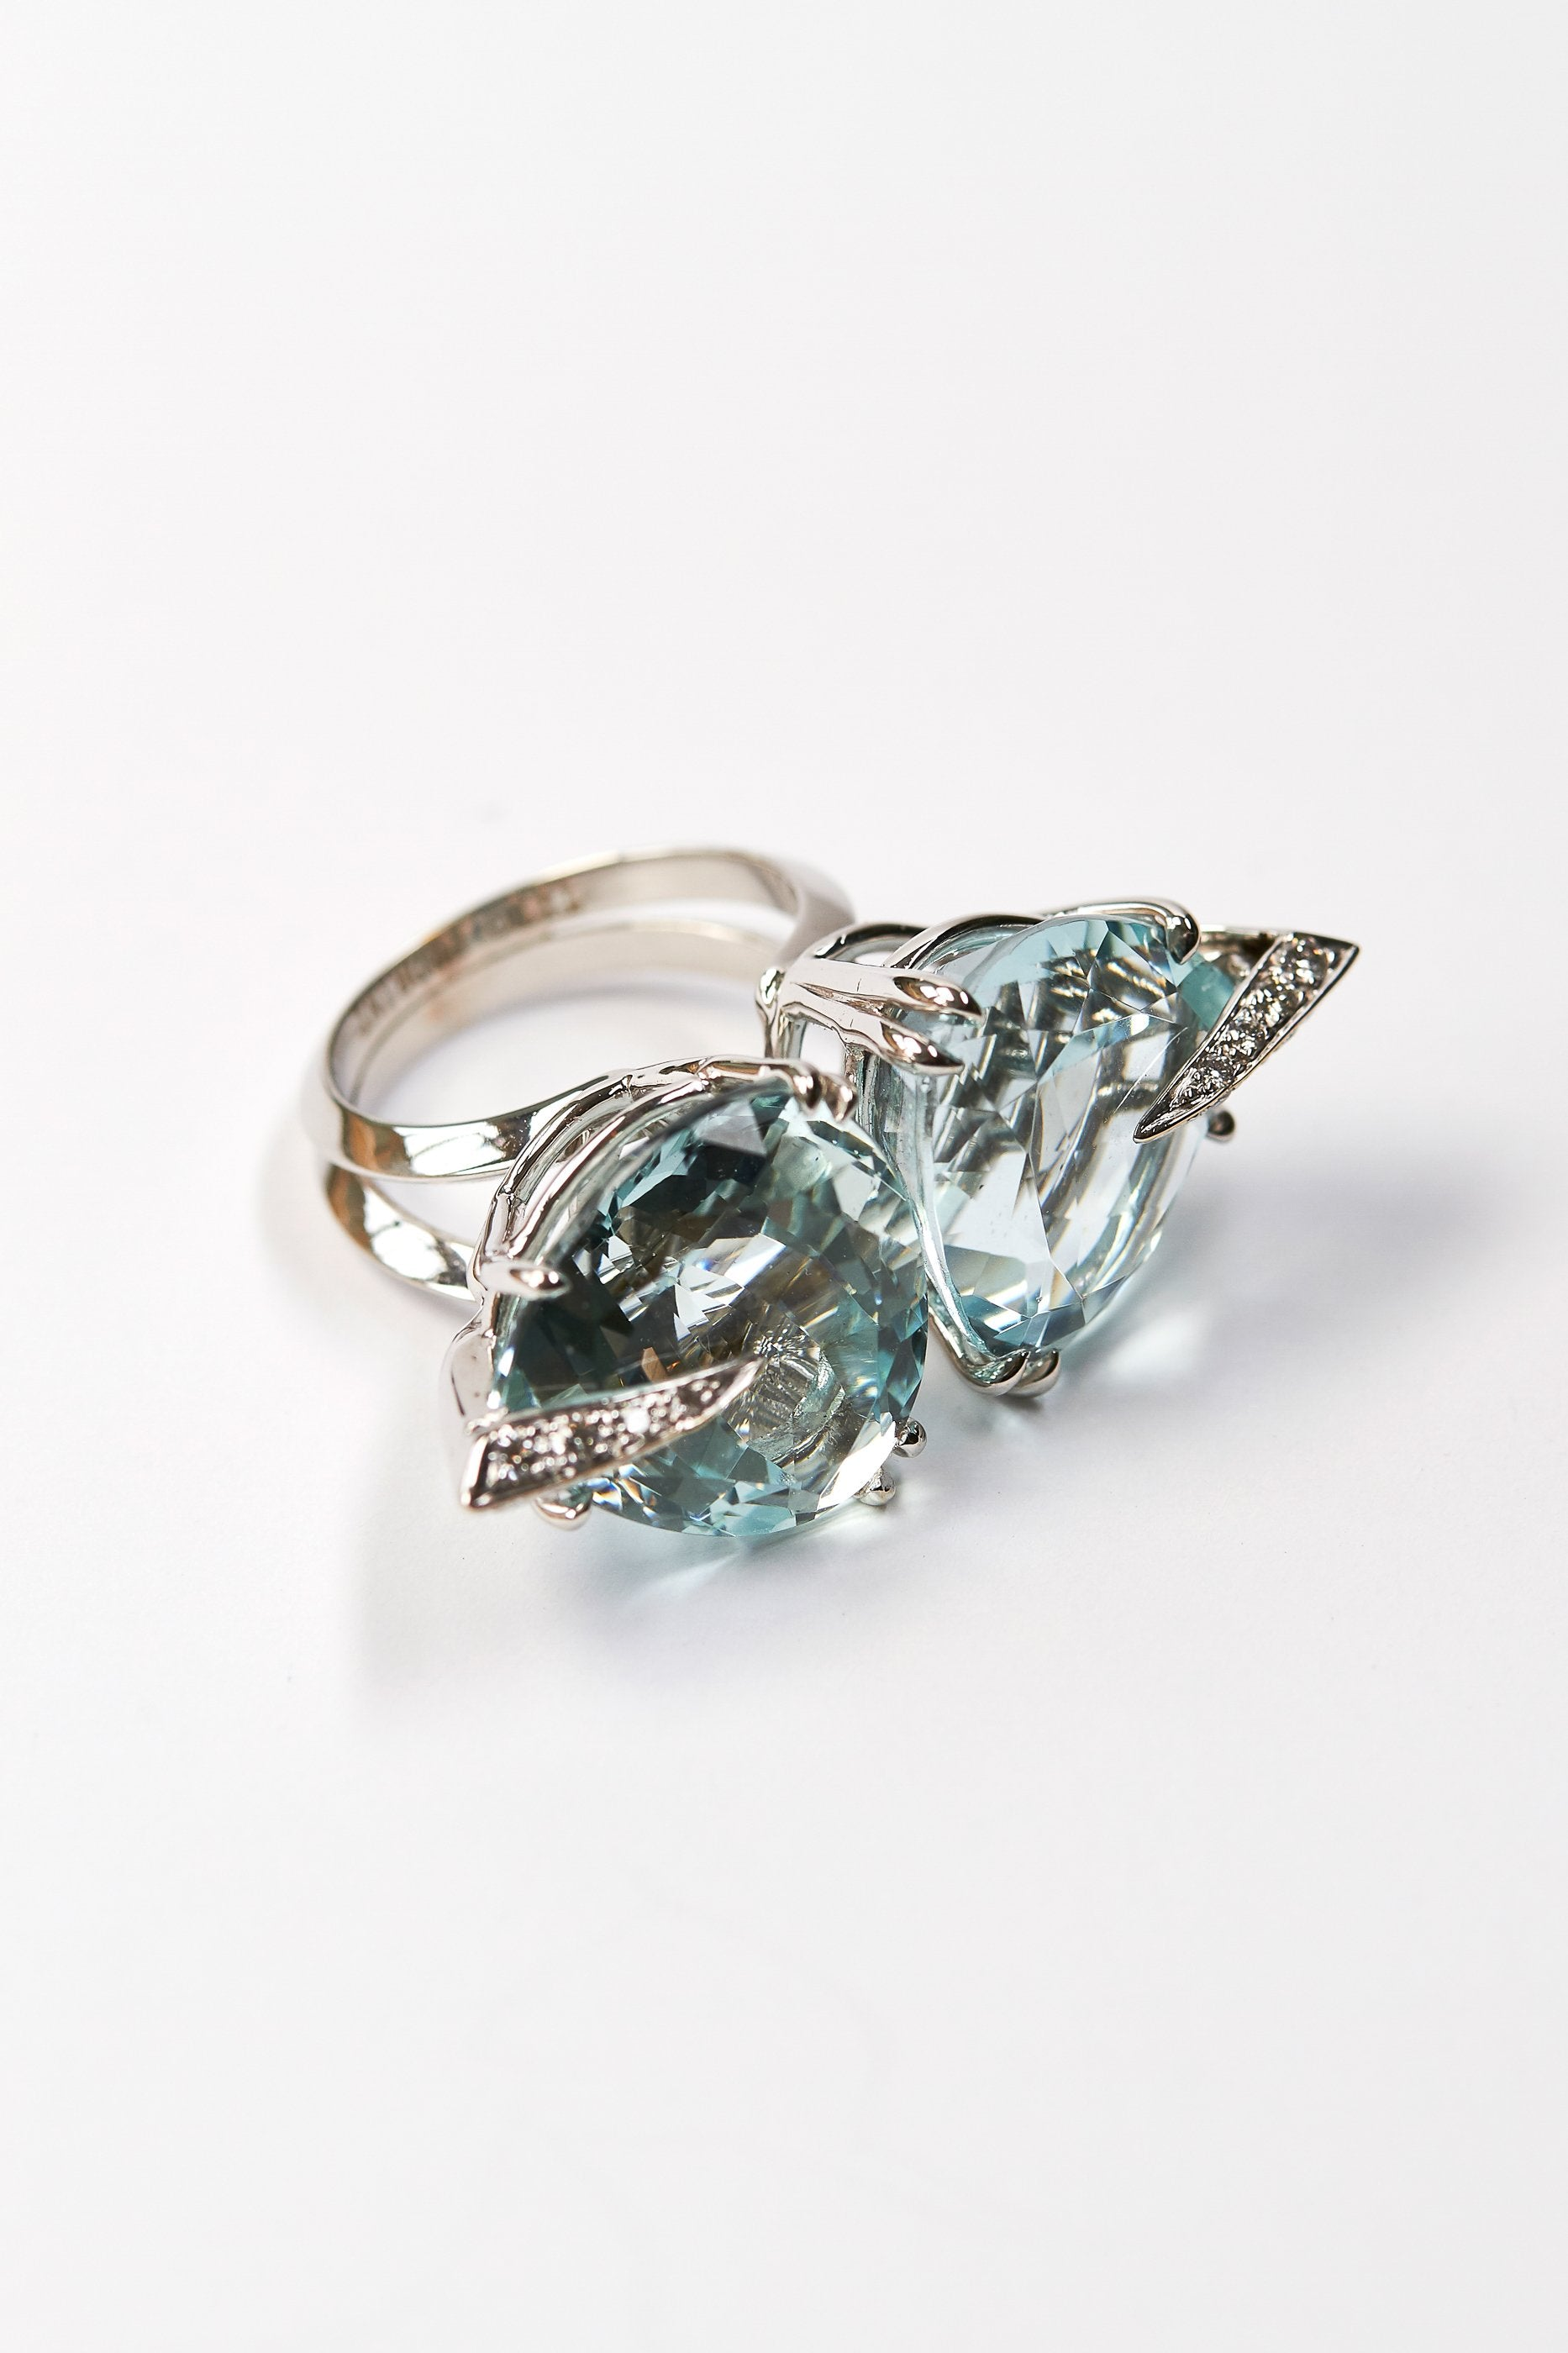 aqua jeffrey jewelers aquamarine jewellery product ring and company